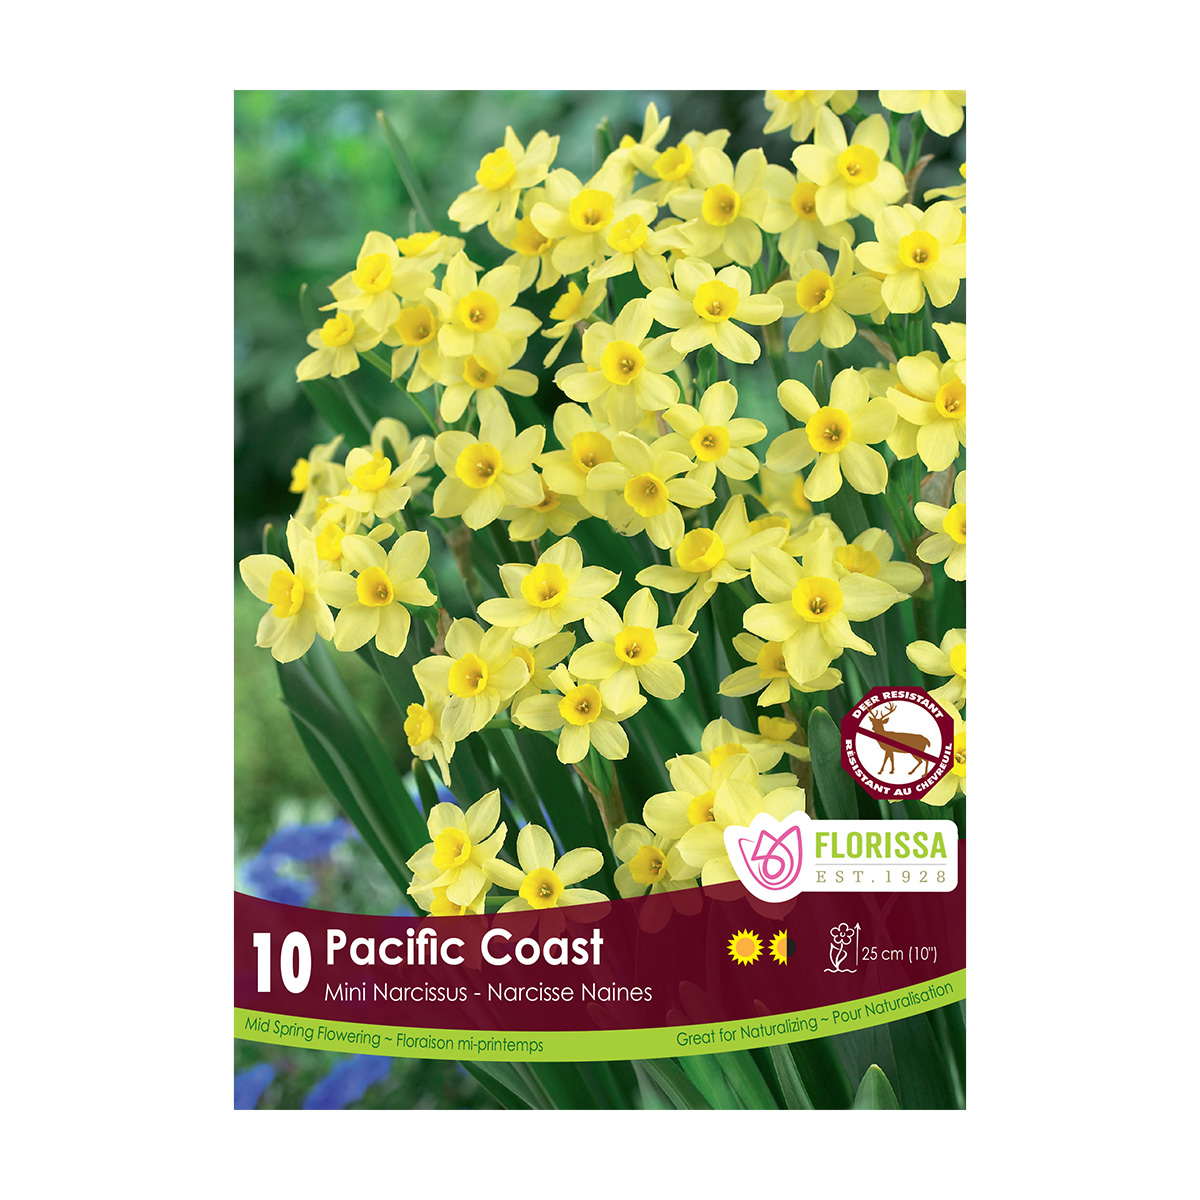 Narcissus 'Pacific Coast Mini' Bulbs